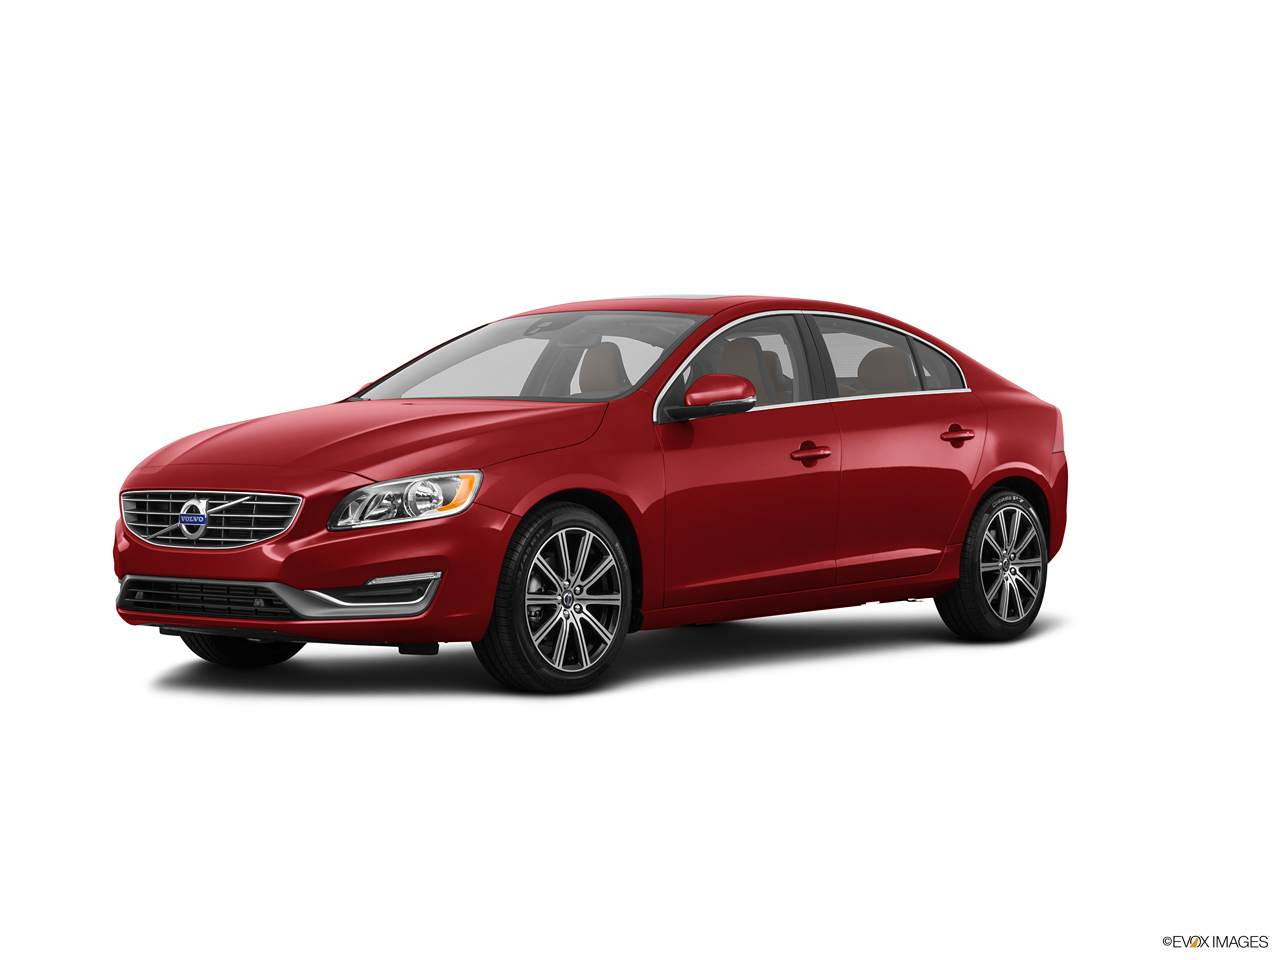 Car Features List For Volvo S60 2017 3 0 T6 R Design Oman